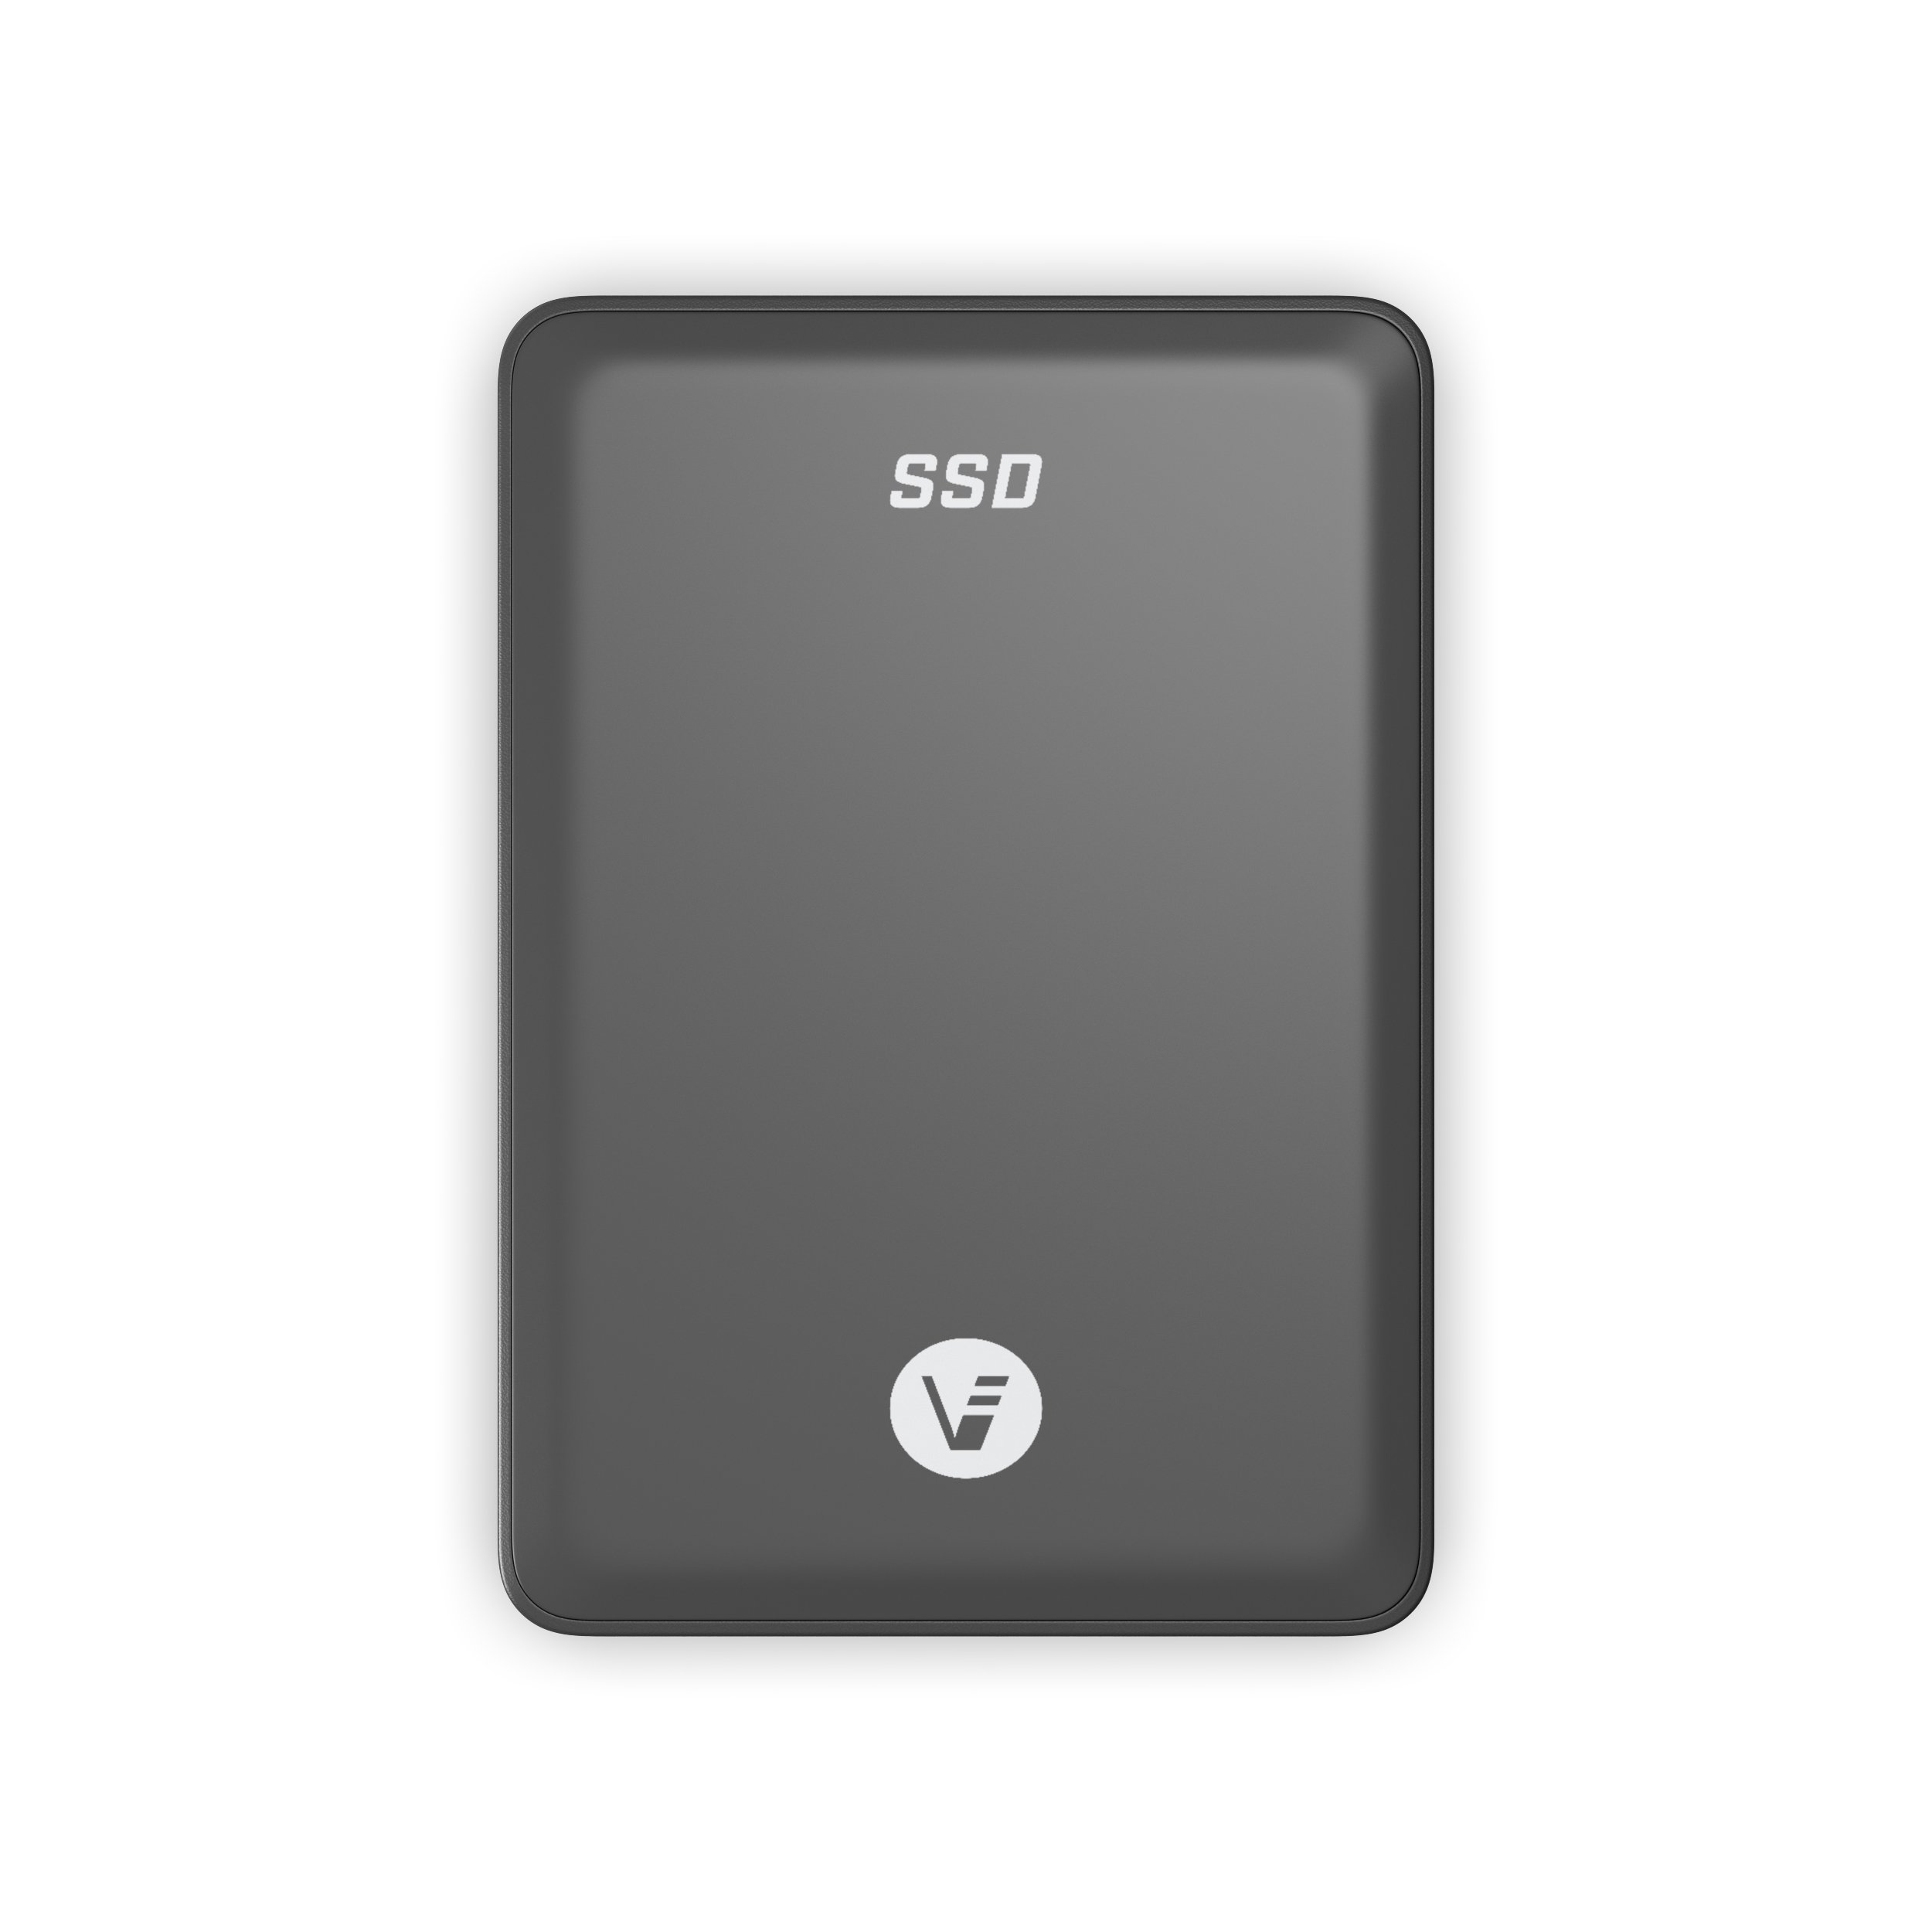 VectoTech Portable 4TB External SSD USB 3.0 Rapid Solid State Drive by VectoTech (Image #2)